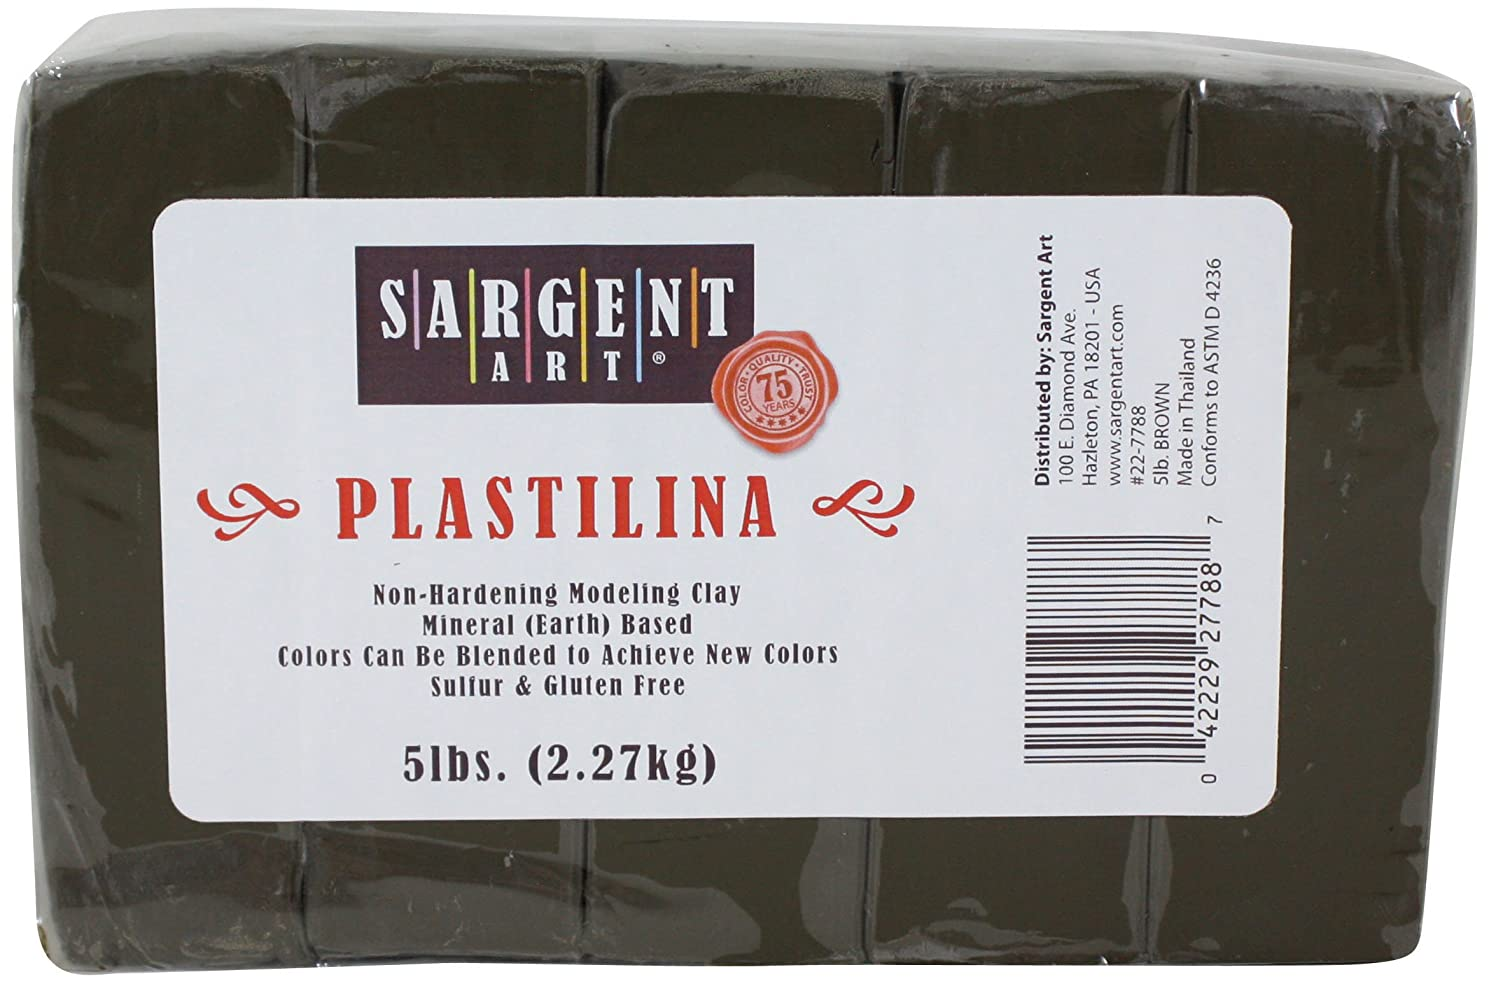 Sargent Art Plastilina Modeling Clay, 5-Pound, Brown